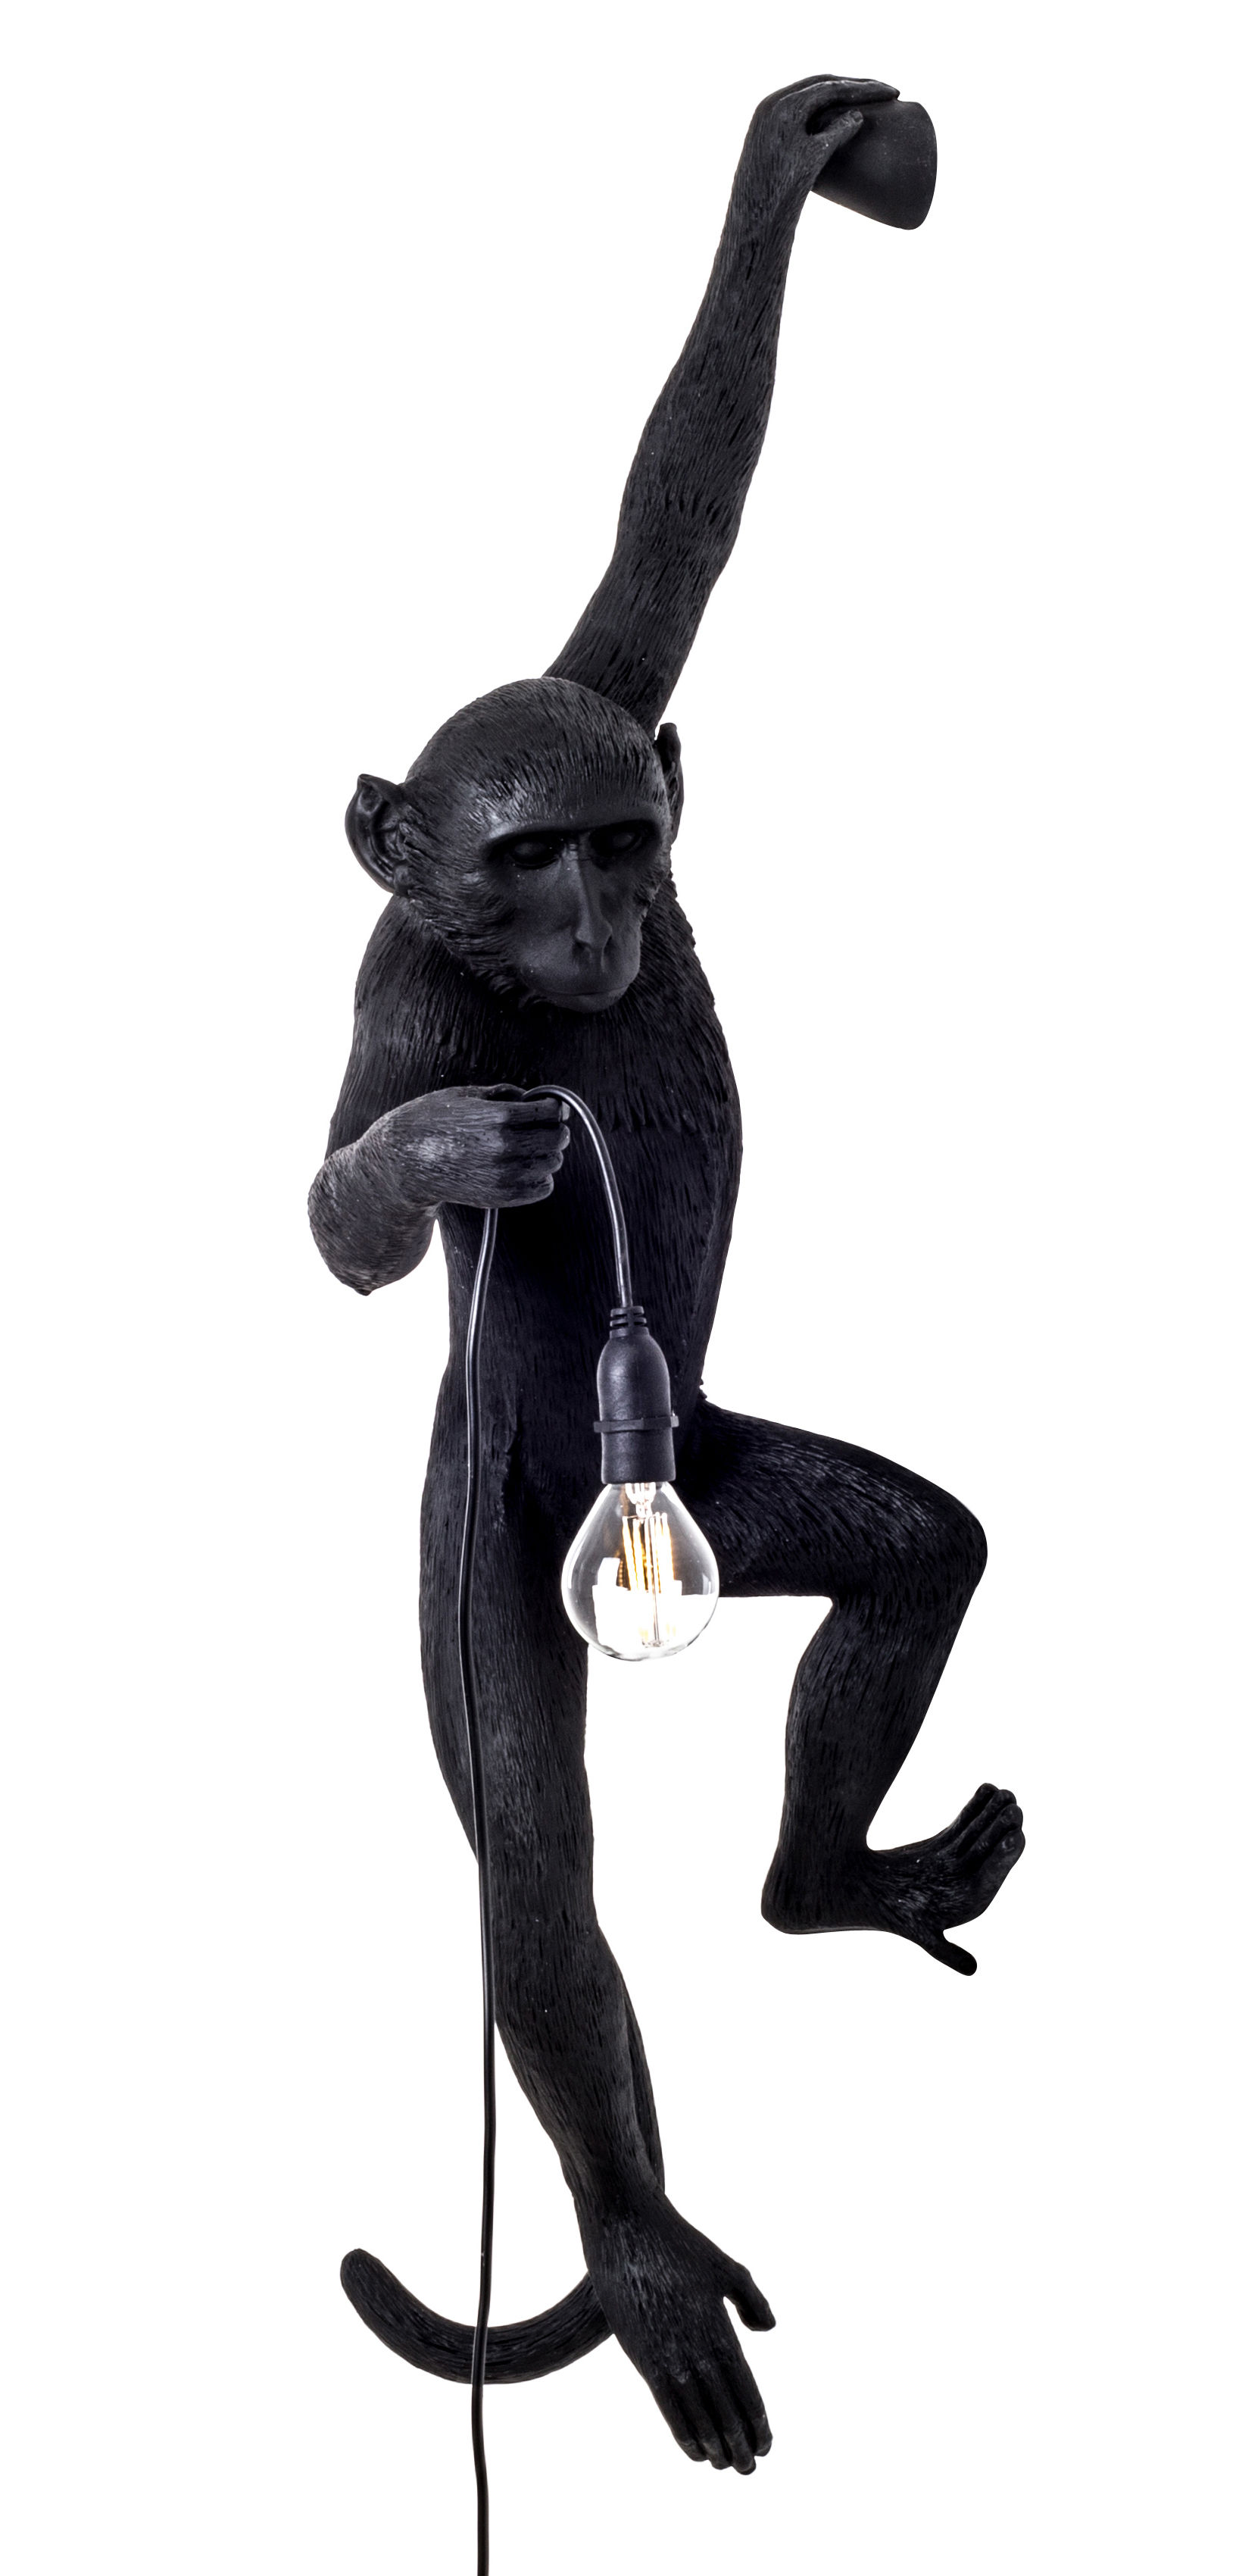 Lighting - Wall Lights - Monkey Hanging Outdoor wall light - / Outdoor - H 76.5 cm by Seletti - Black - Resin